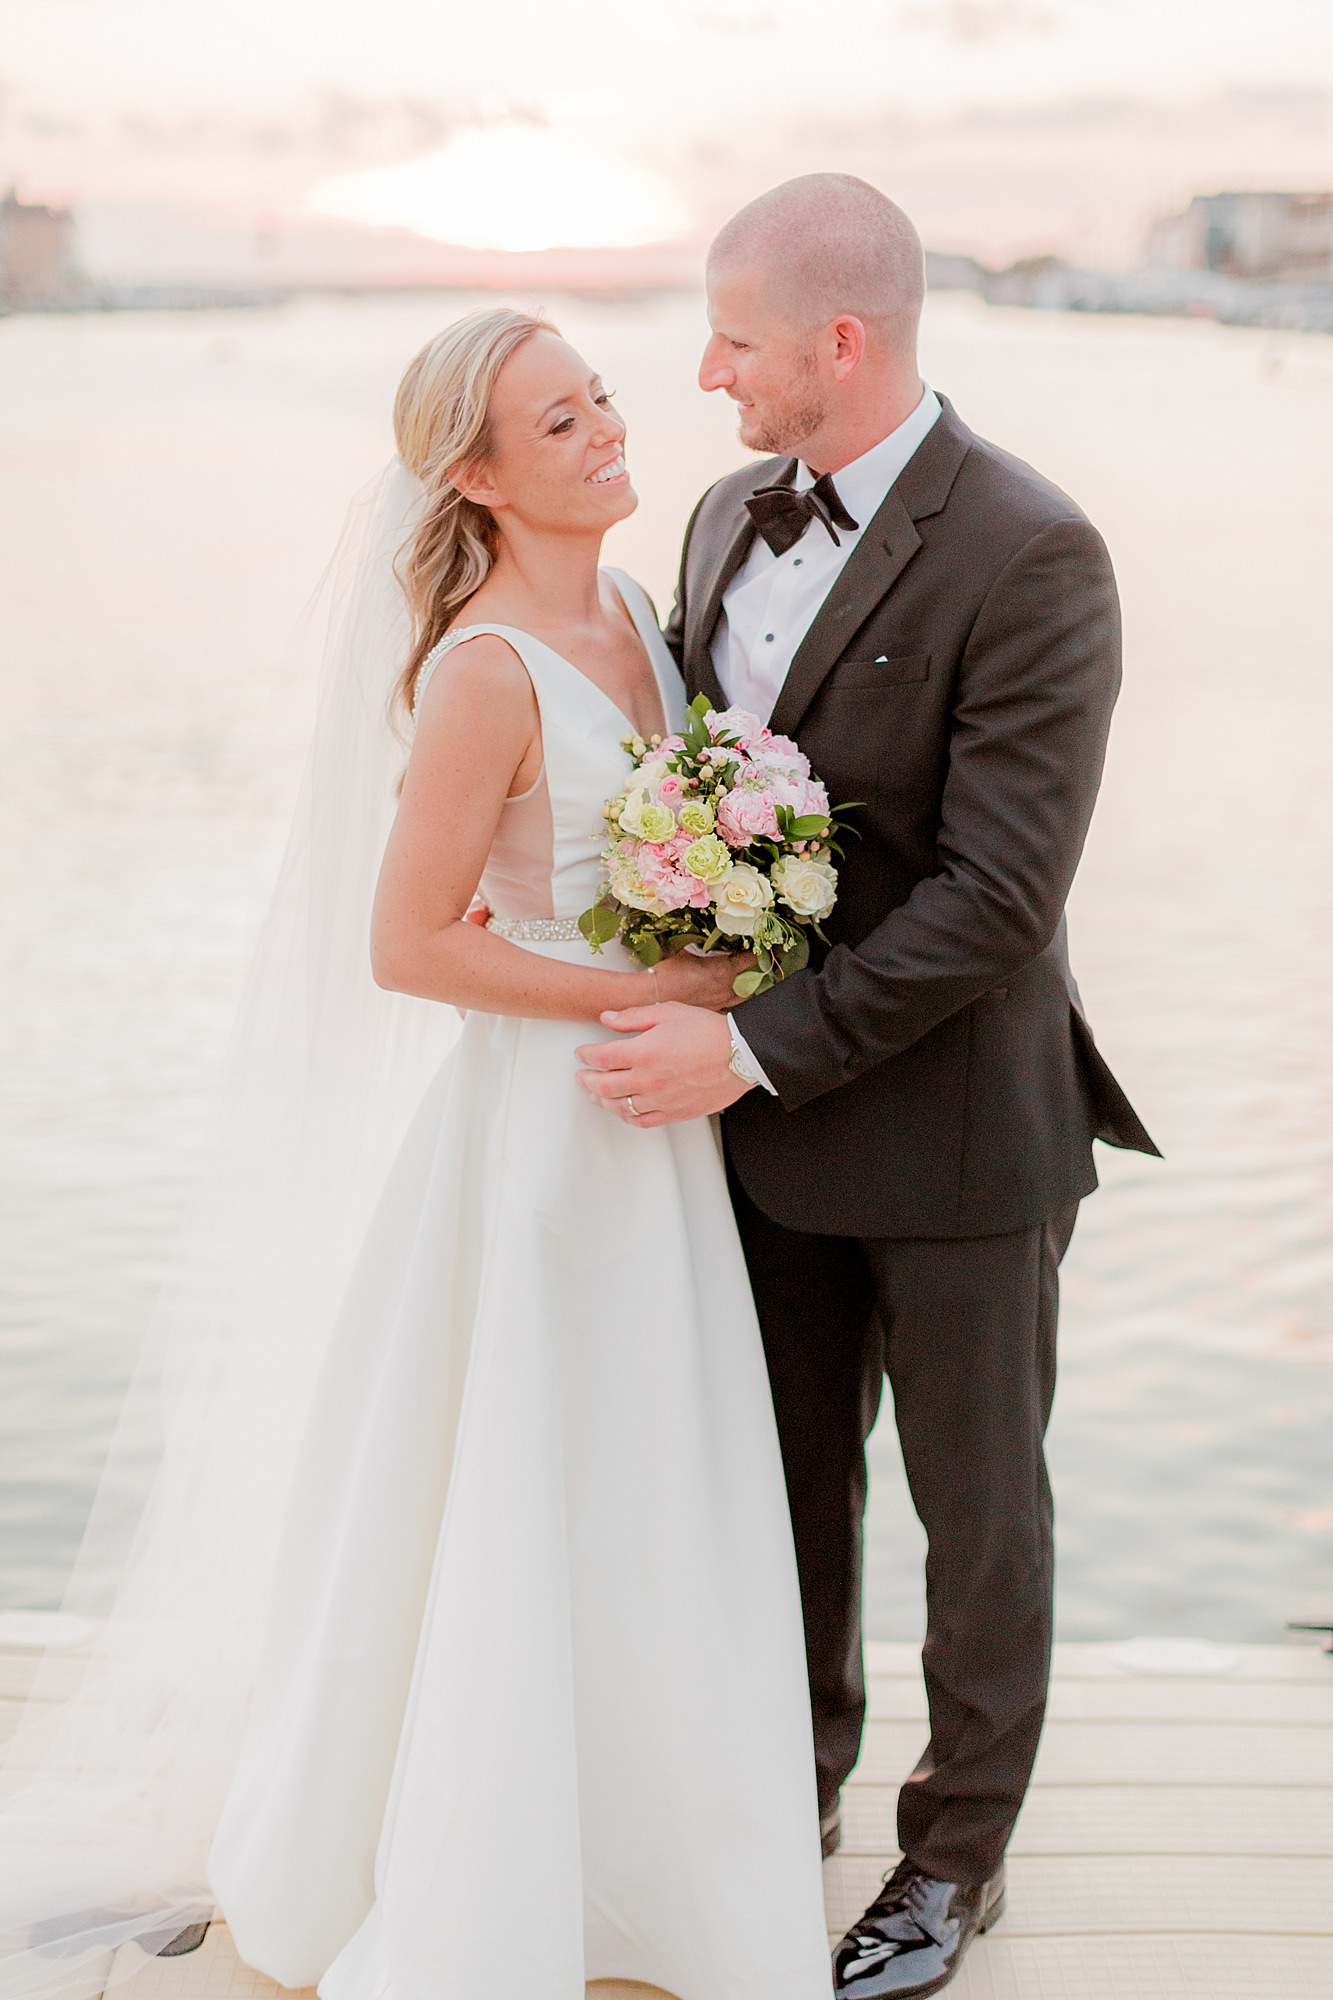 Natural and Vibrant Wedding Photography at the Reeds in Stone Harbor NJ by Magdalena Studios 0060